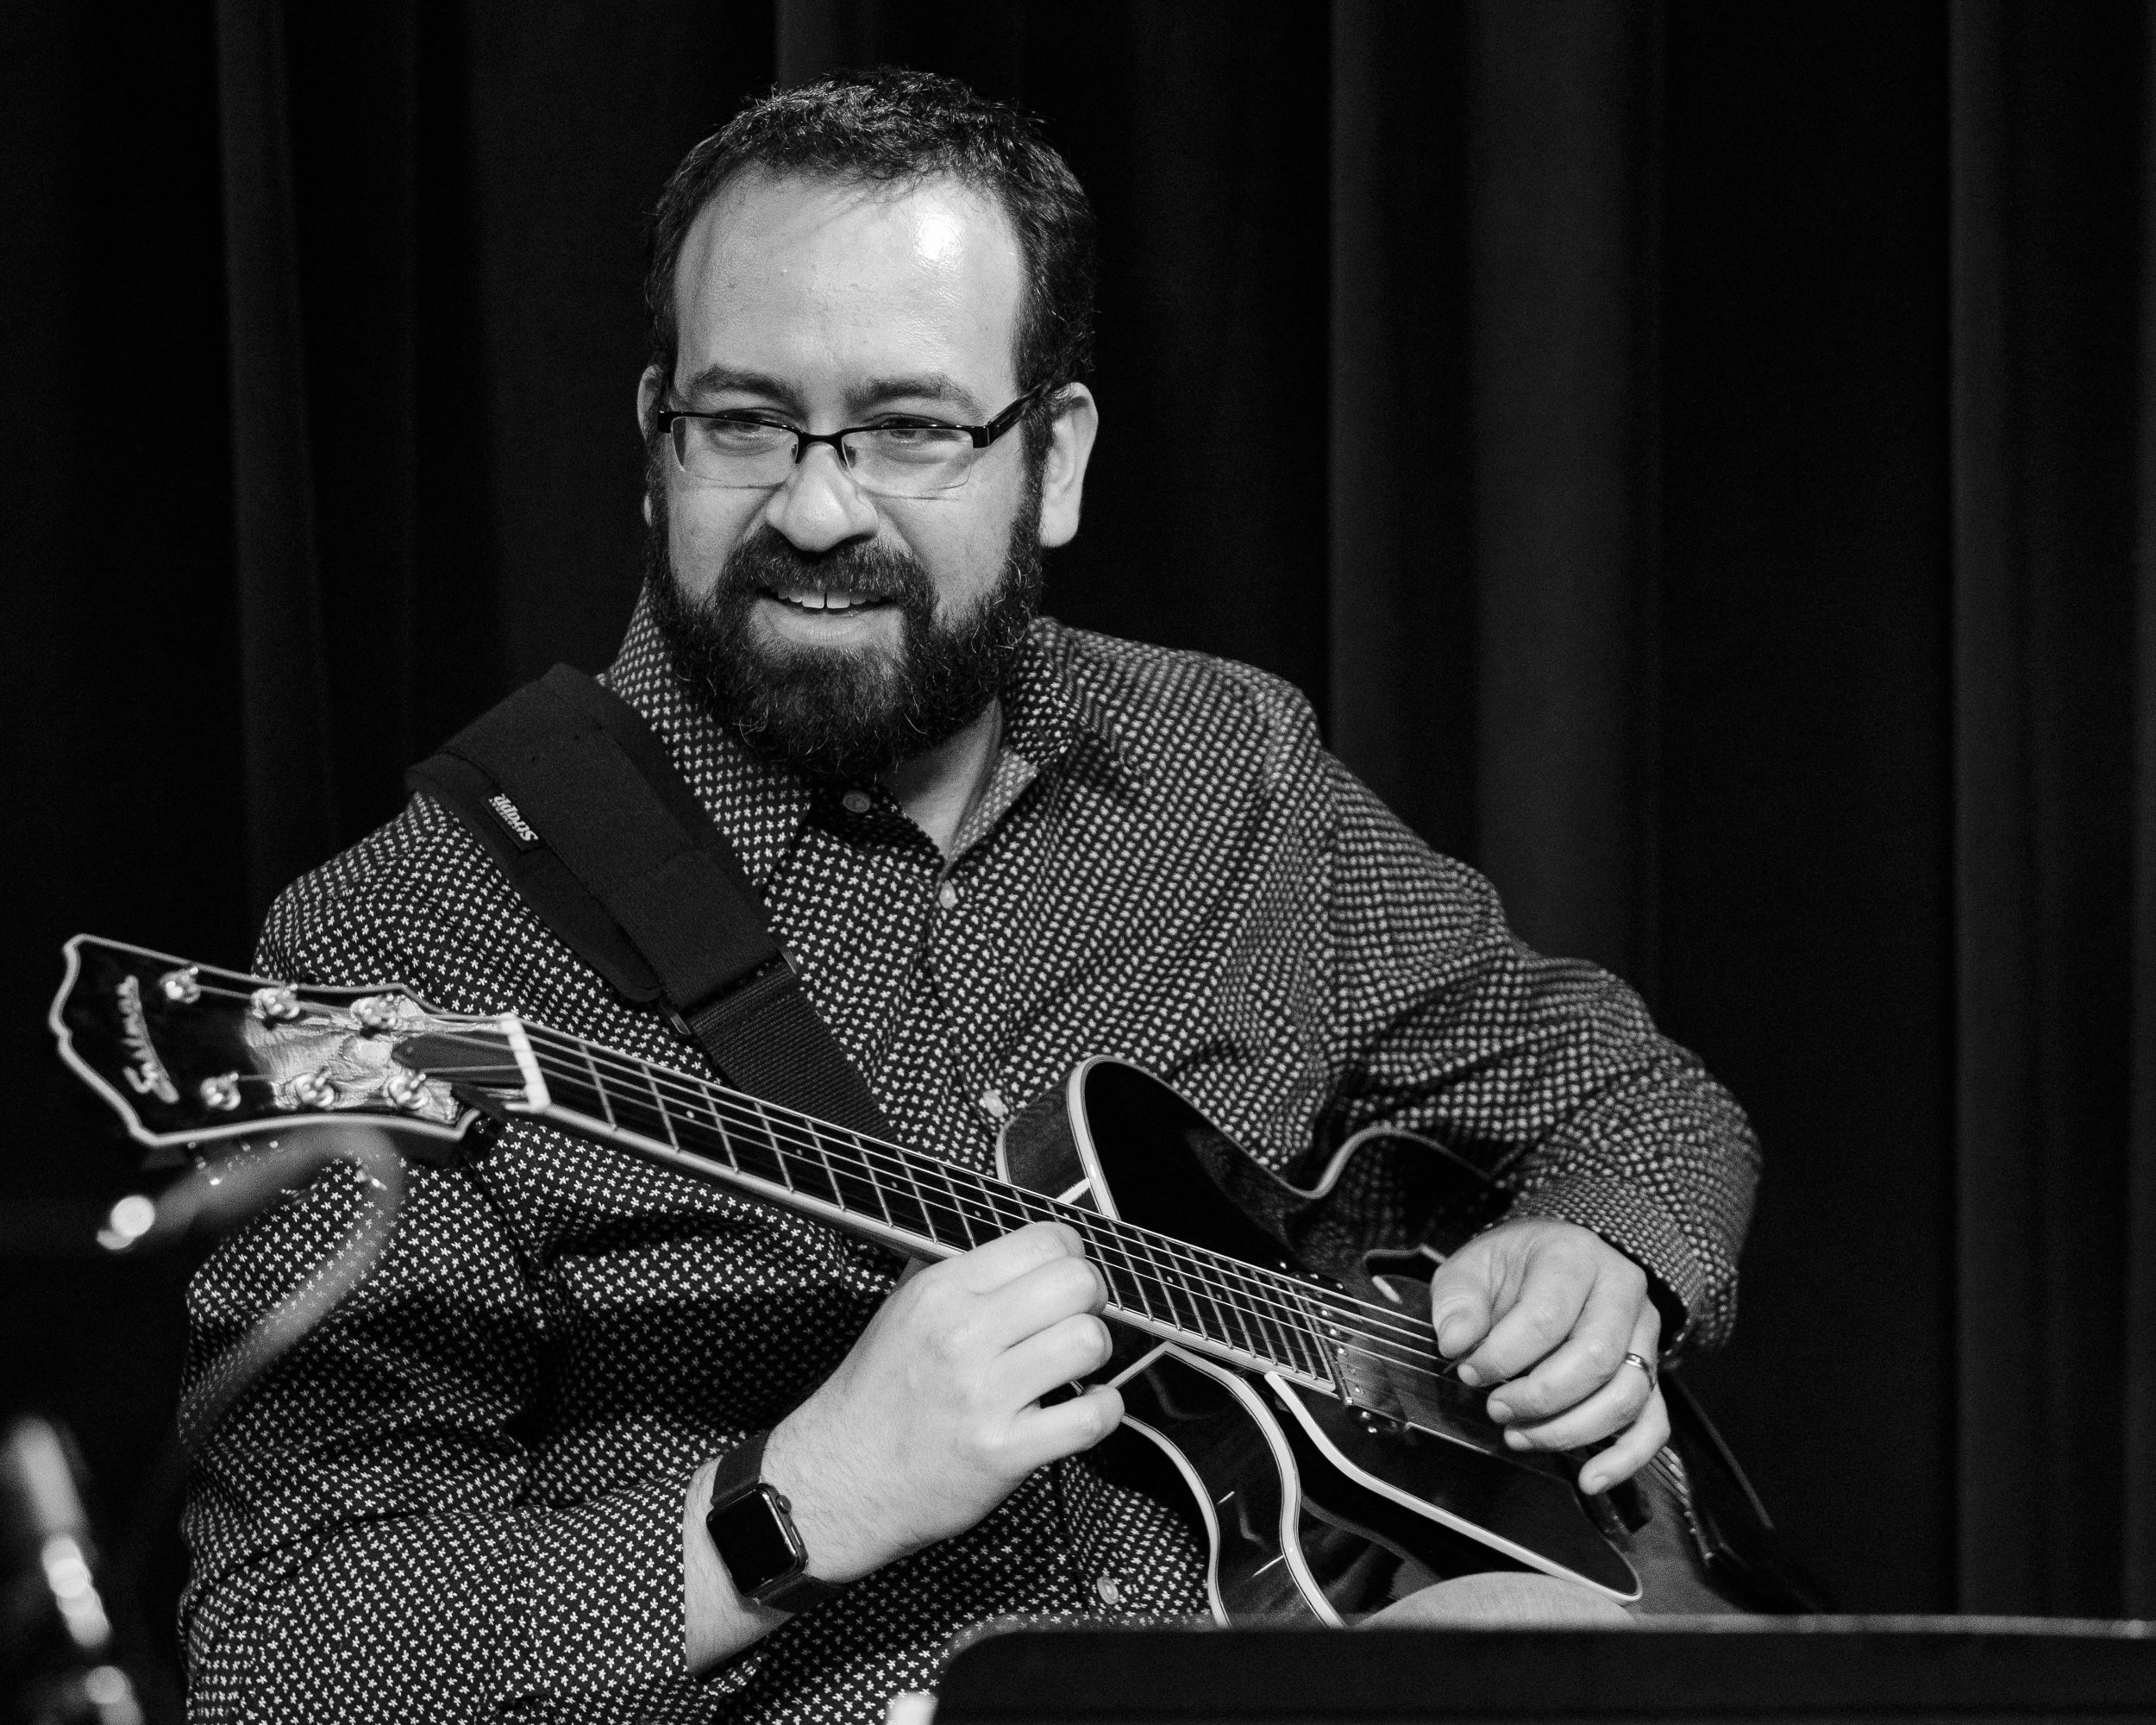 Jeff Libman on guitar with Union 32 playing scandinavian jazz